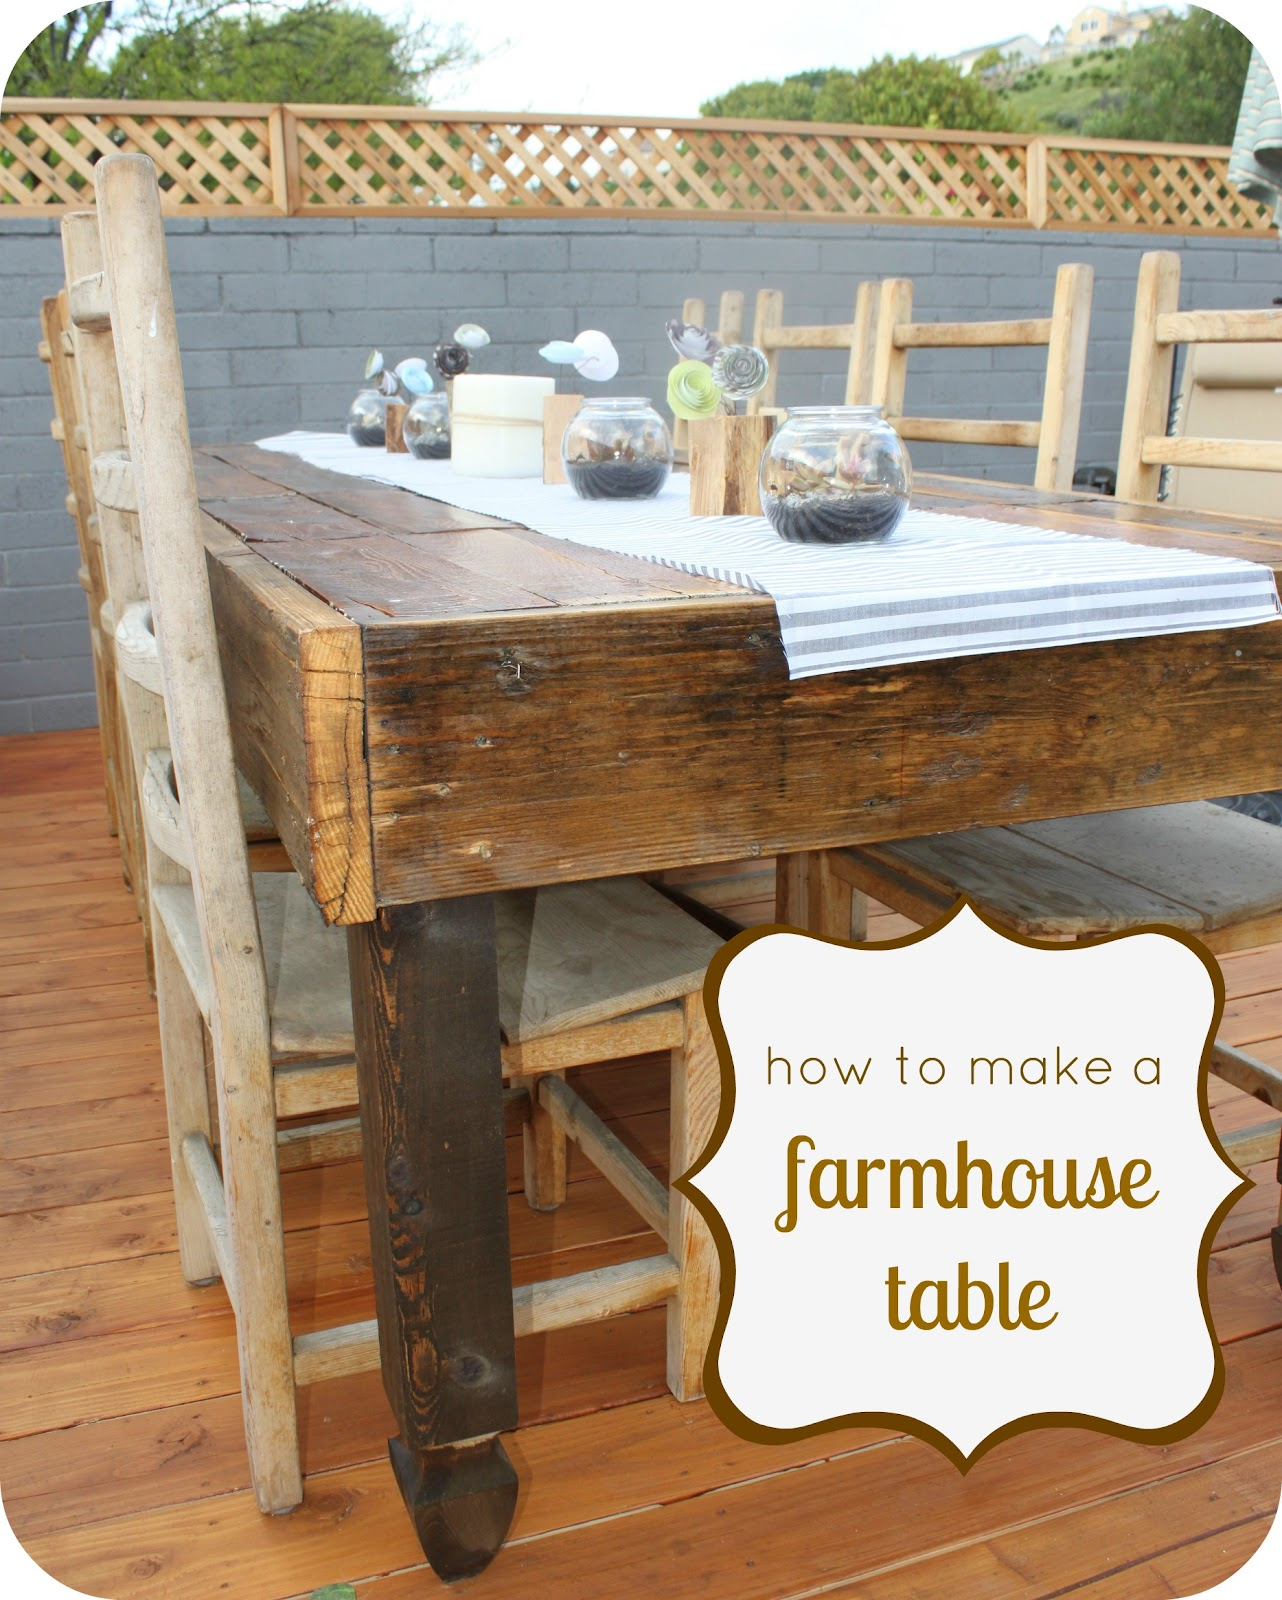 Look What Jeff Did: DIY Farmhouse Table